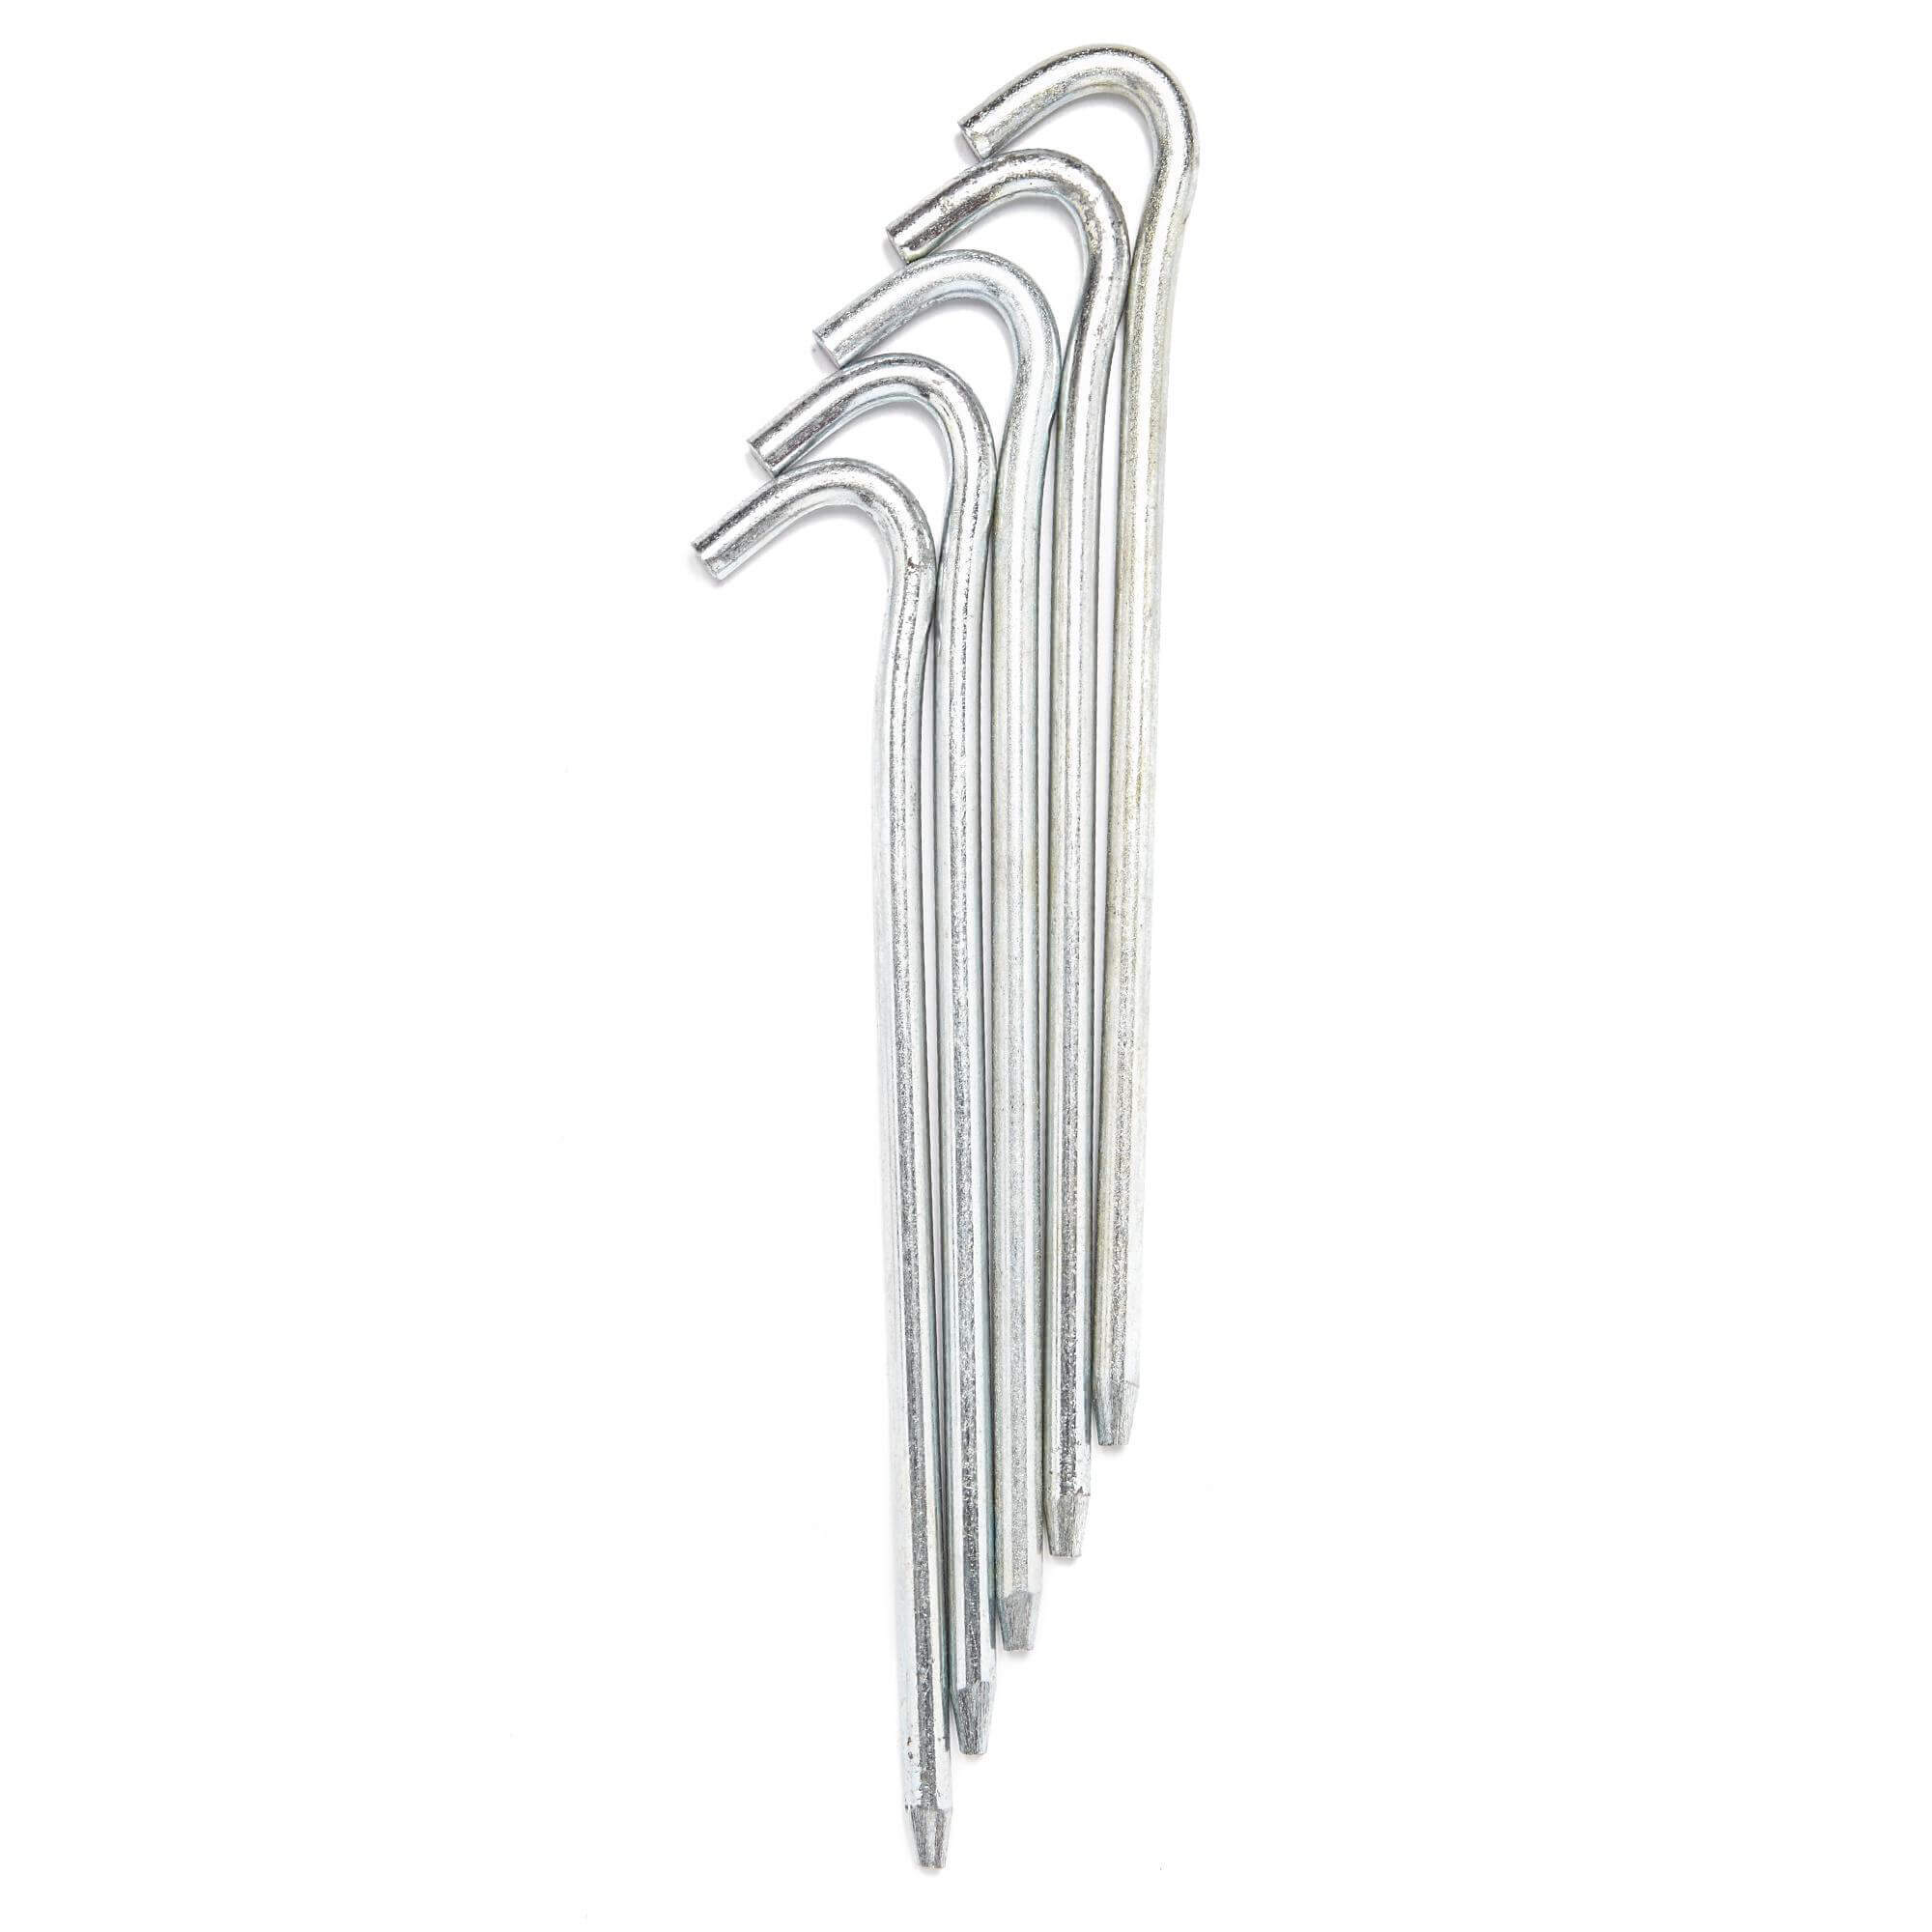 Small Steel Tent Pegs